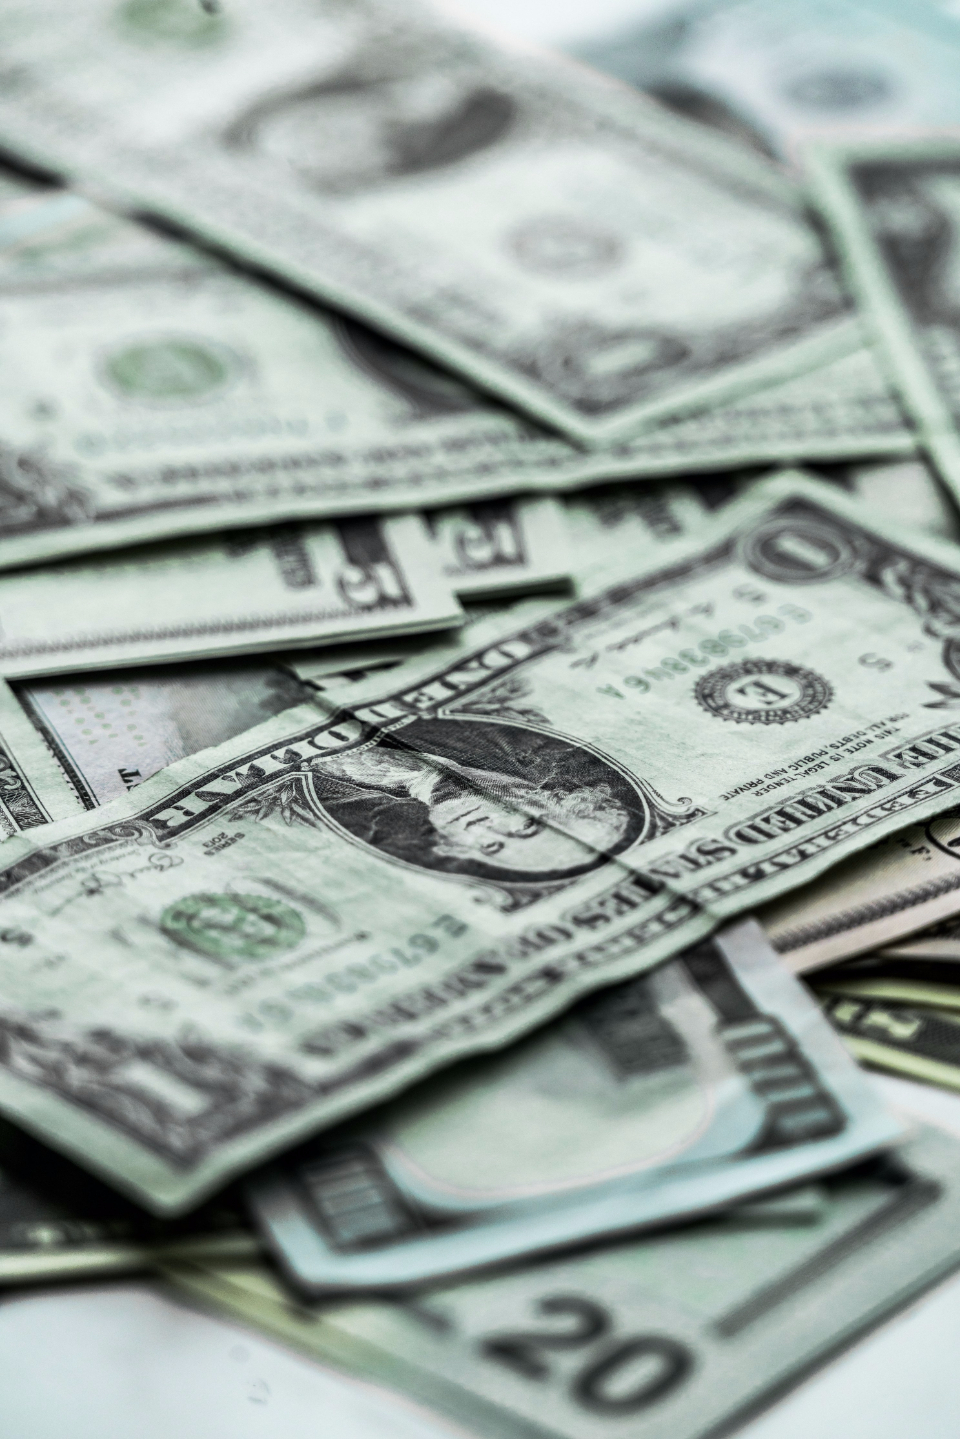 Free stock photo of money currency